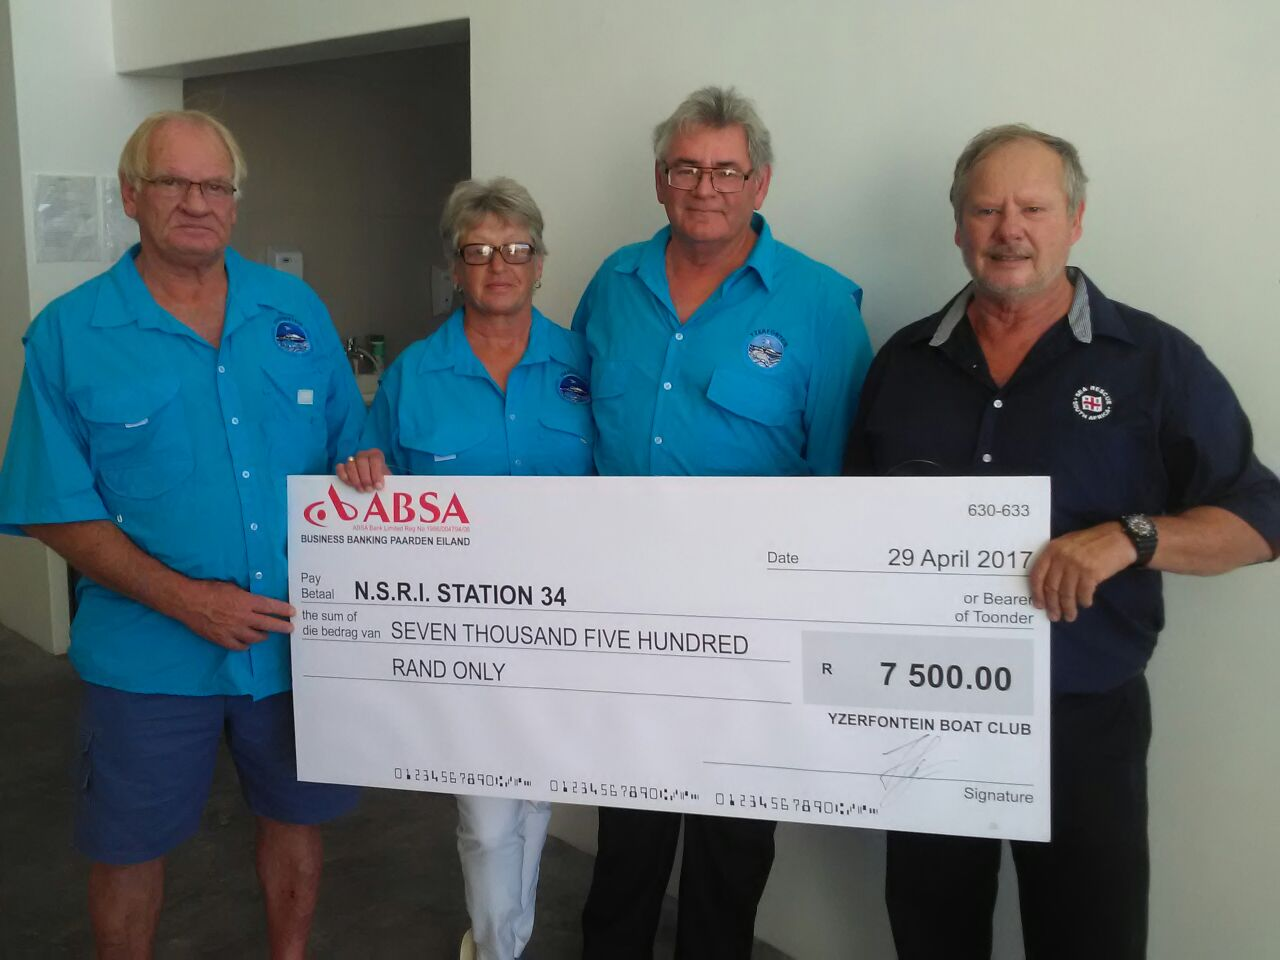 The Yzerfontein Ski Boat Club presented a donation of R7 500.00 Thank you so much for your kind support.